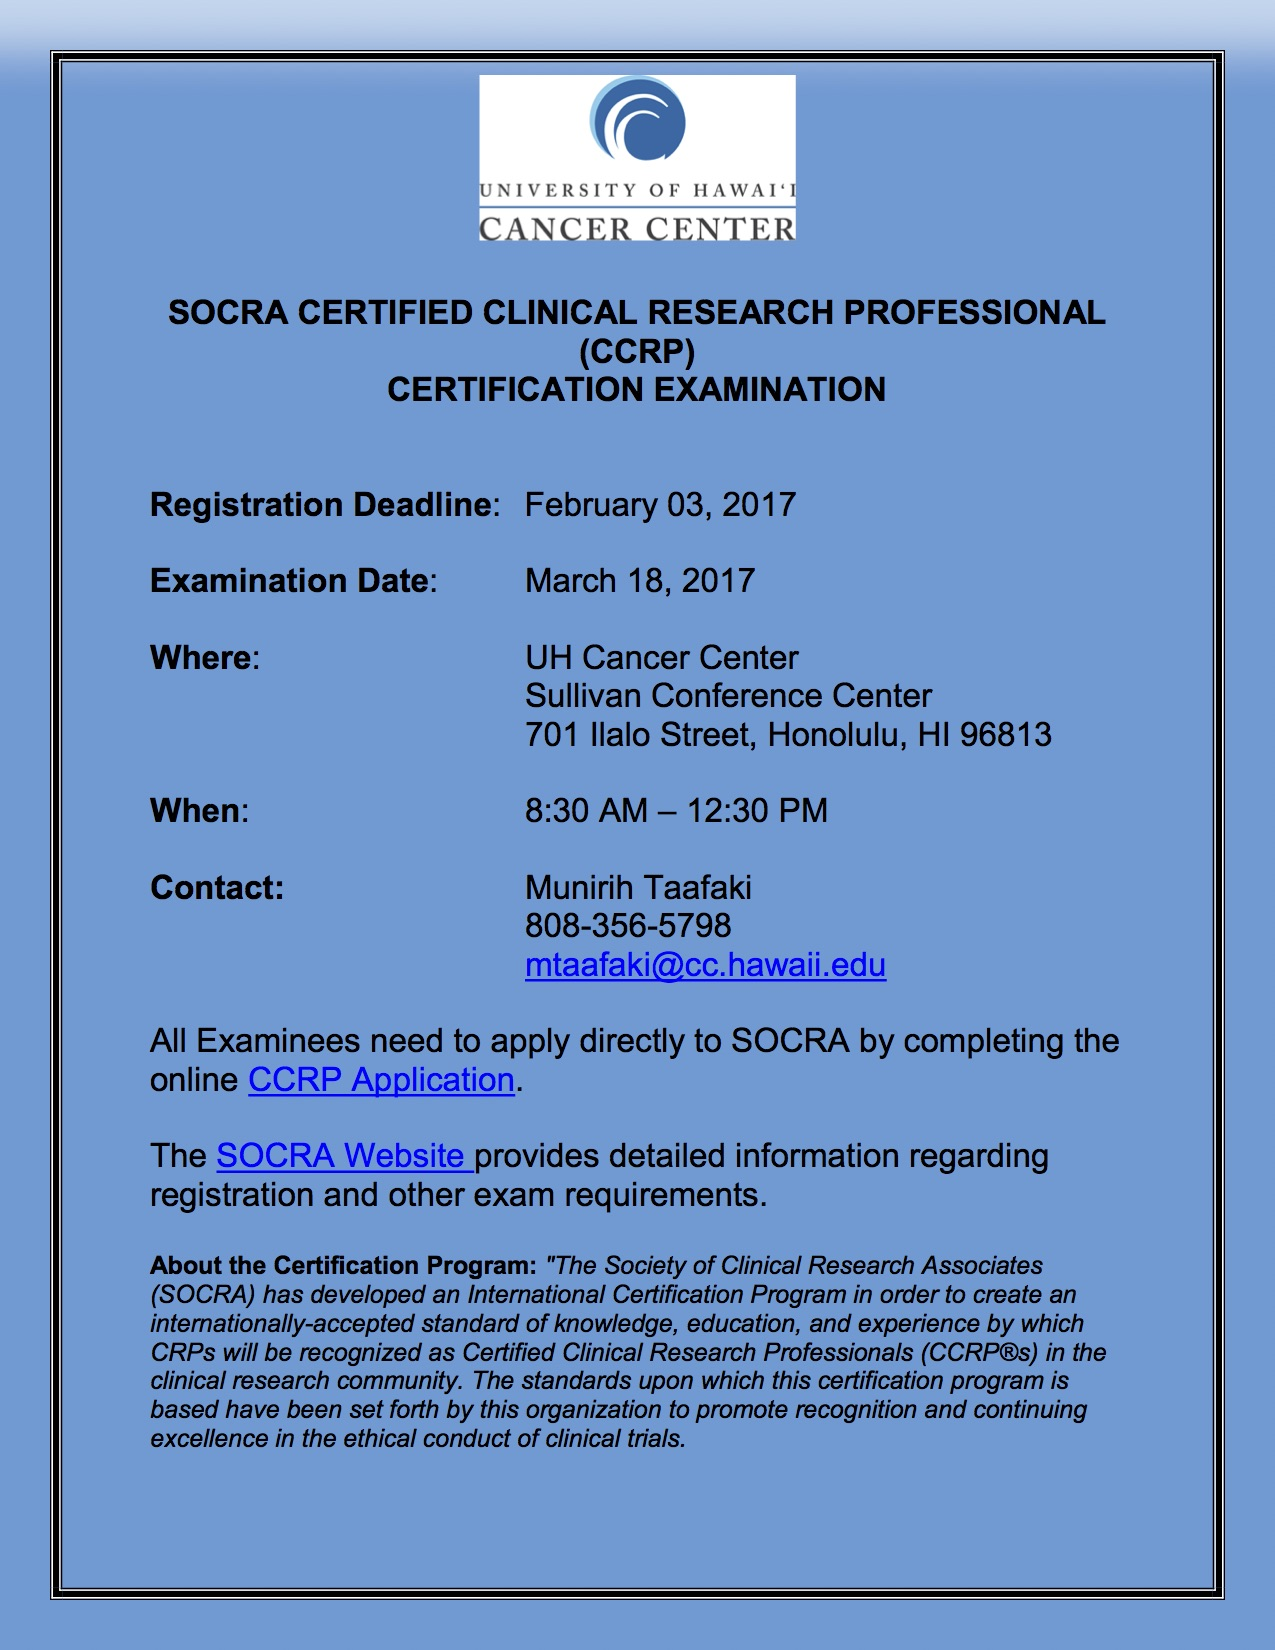 Registration Deadline Socra Certified Clinical Research